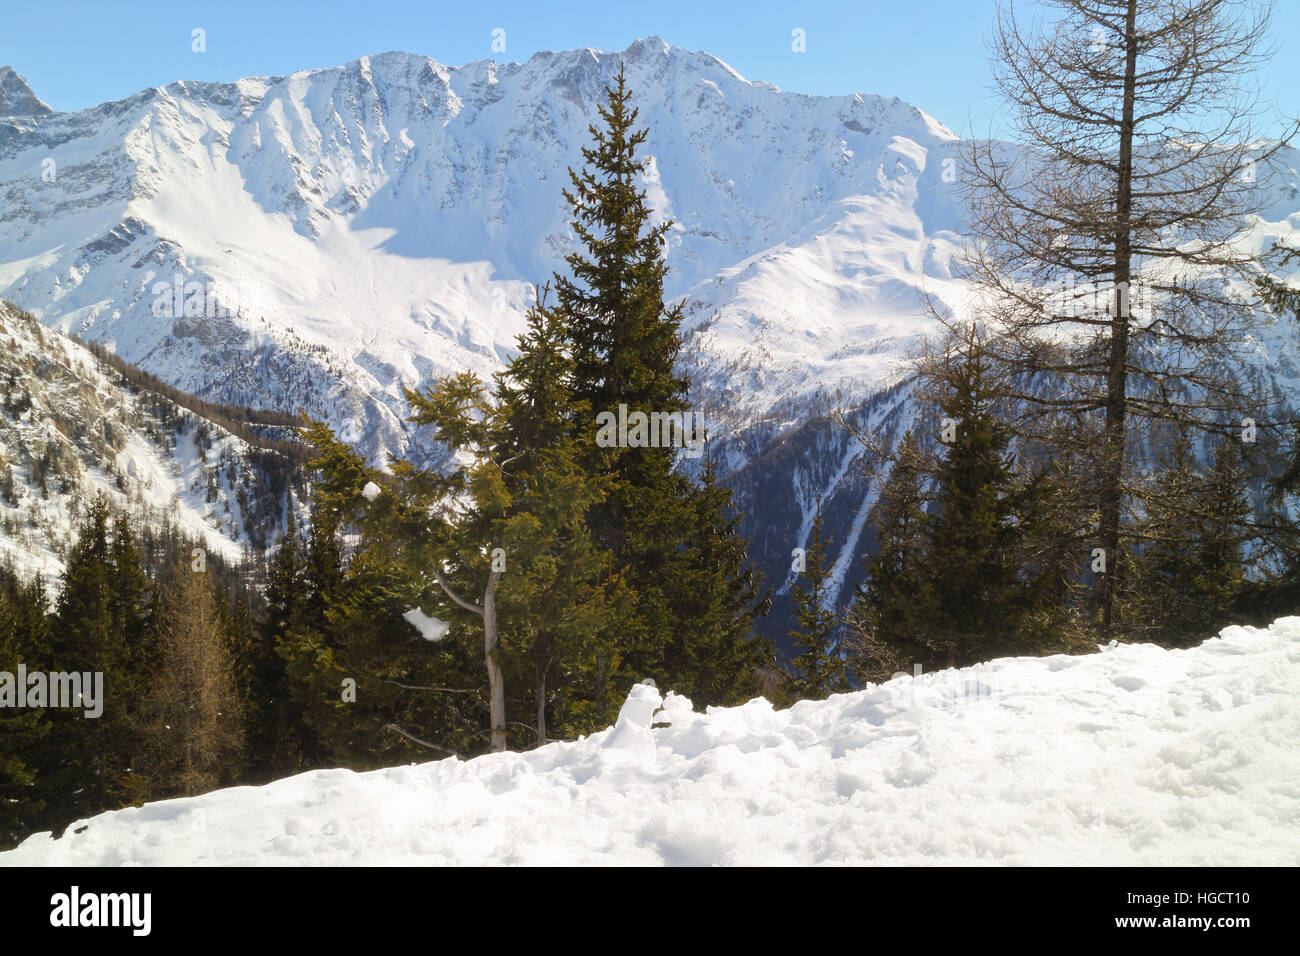 High up in snowy Alps, off piste by pine trees , winter landscape, Les Arcs, Paradiski, France - Stock Image